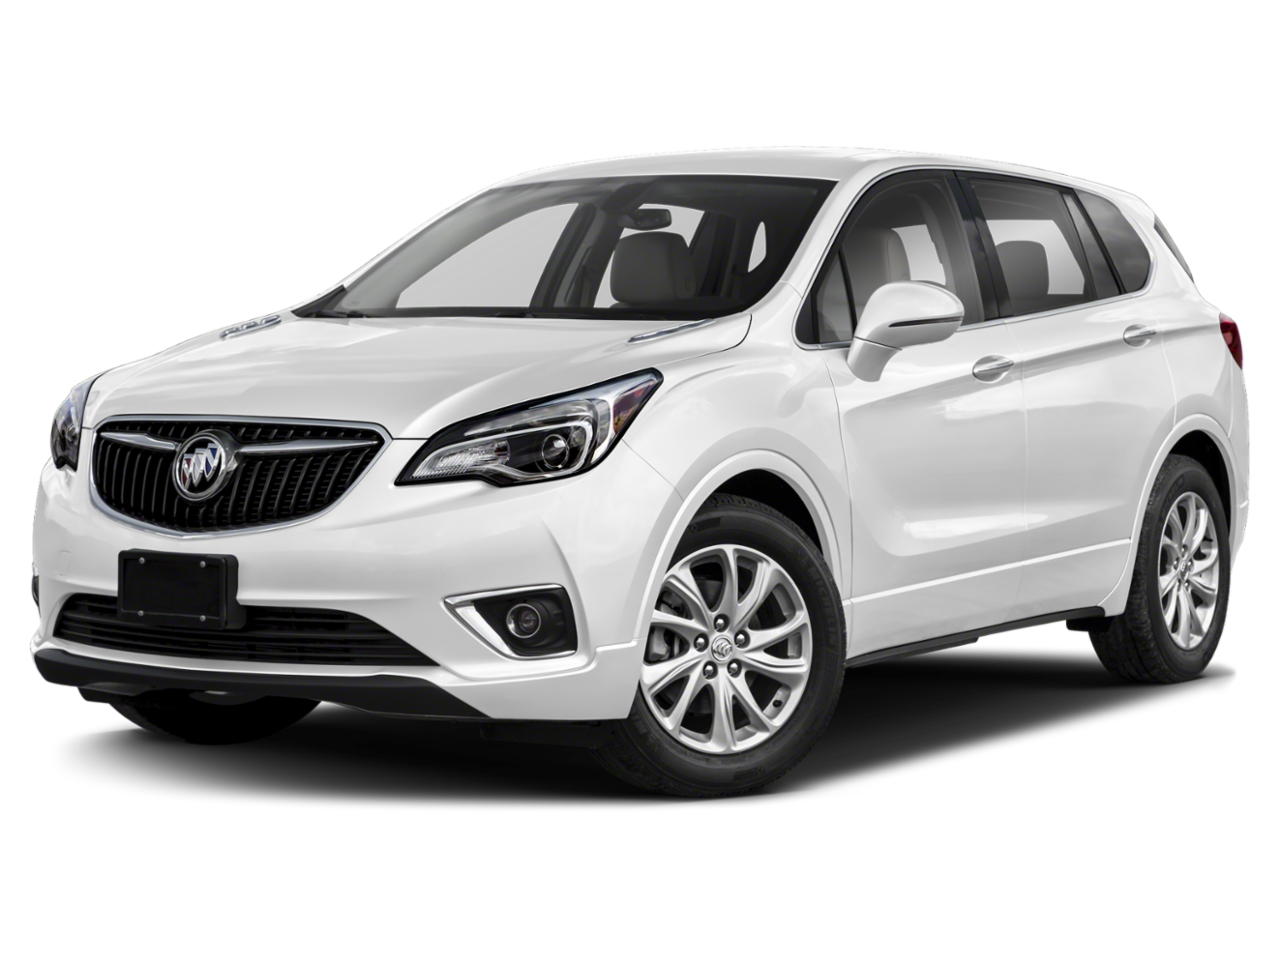 Buick 2020 Envision FWD 4dr